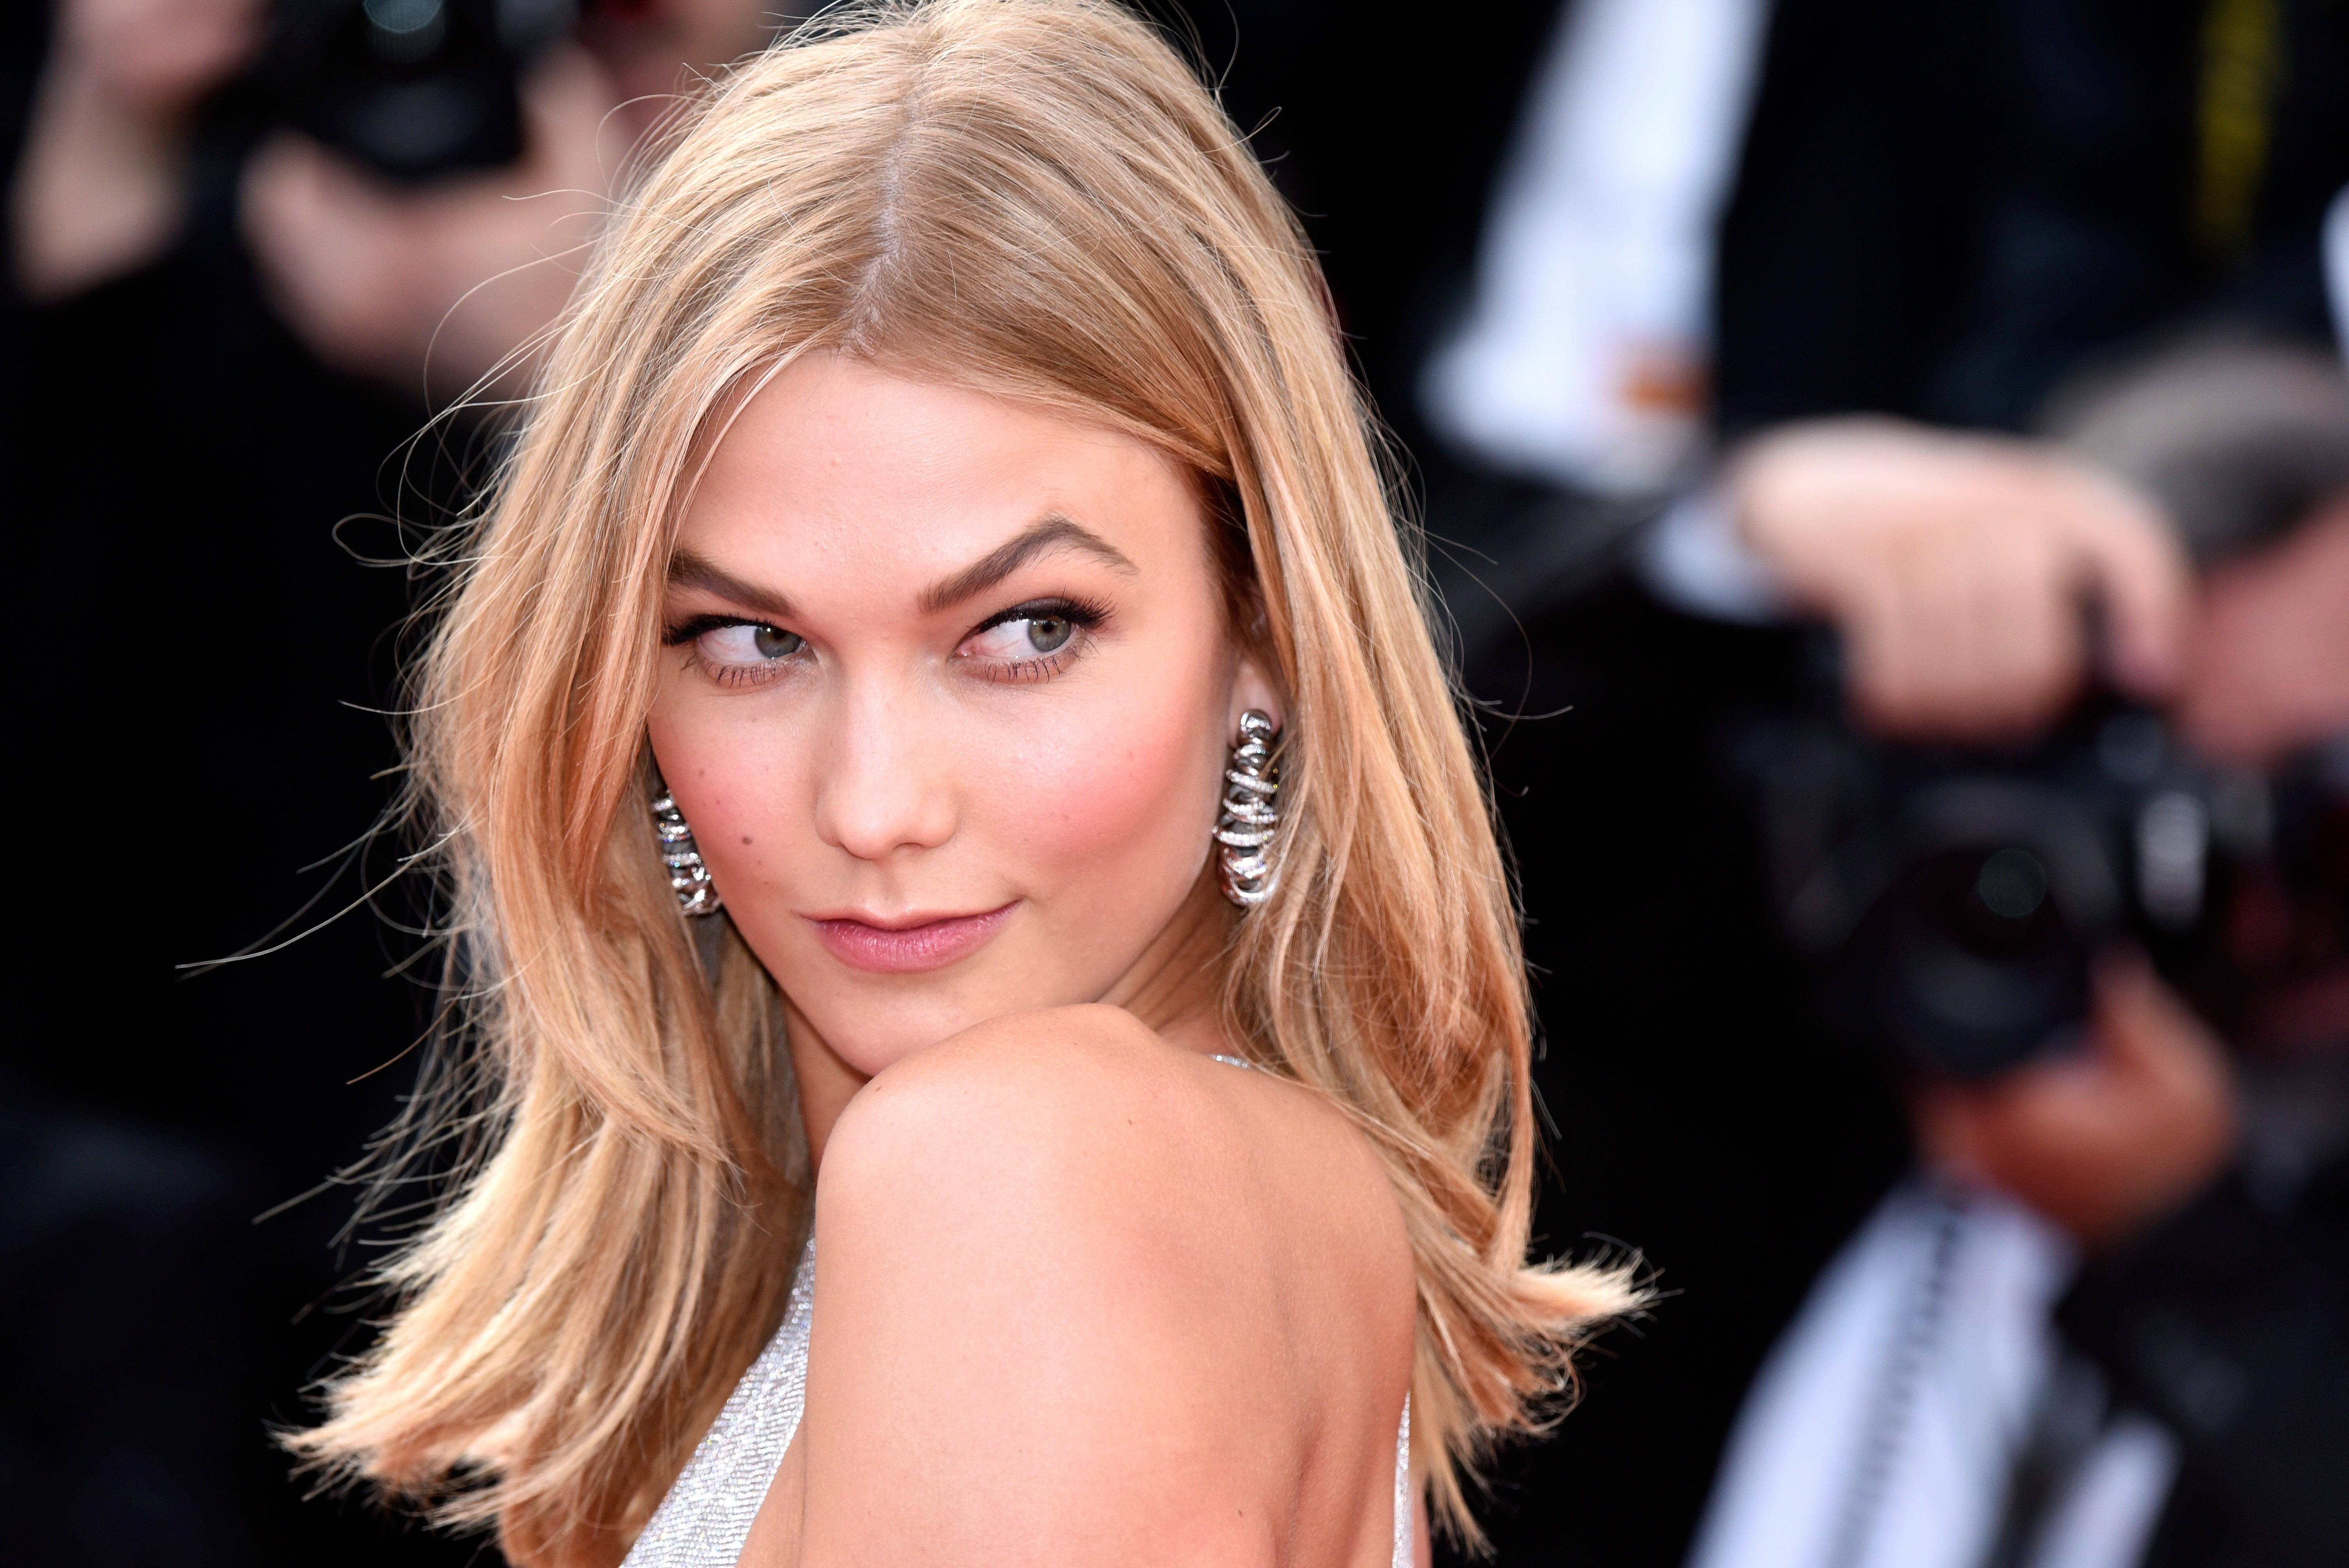 Karlie Kloss Wallpapers Images Photos Pictures Backgrounds